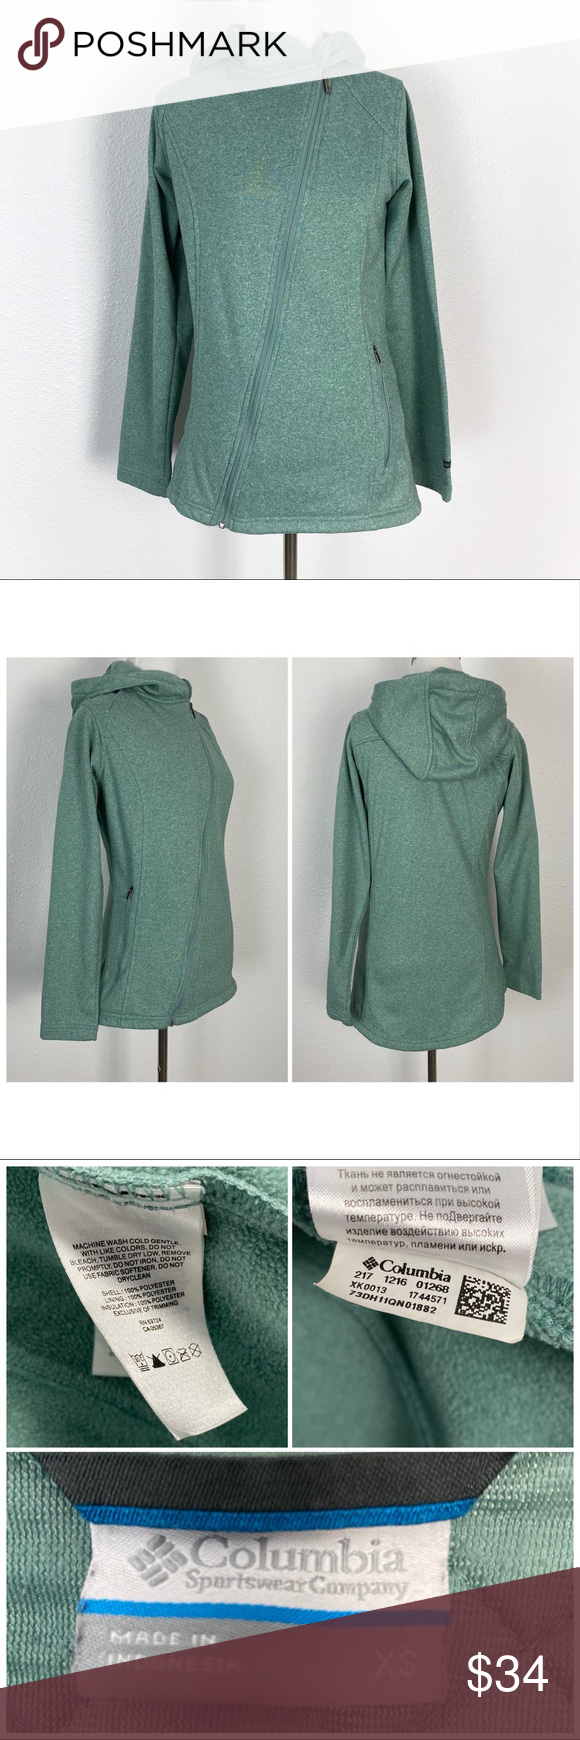 Columbia XS Asymmetrical Zip Hoodie Sweatshirt Columbia XS heathered green asymm…